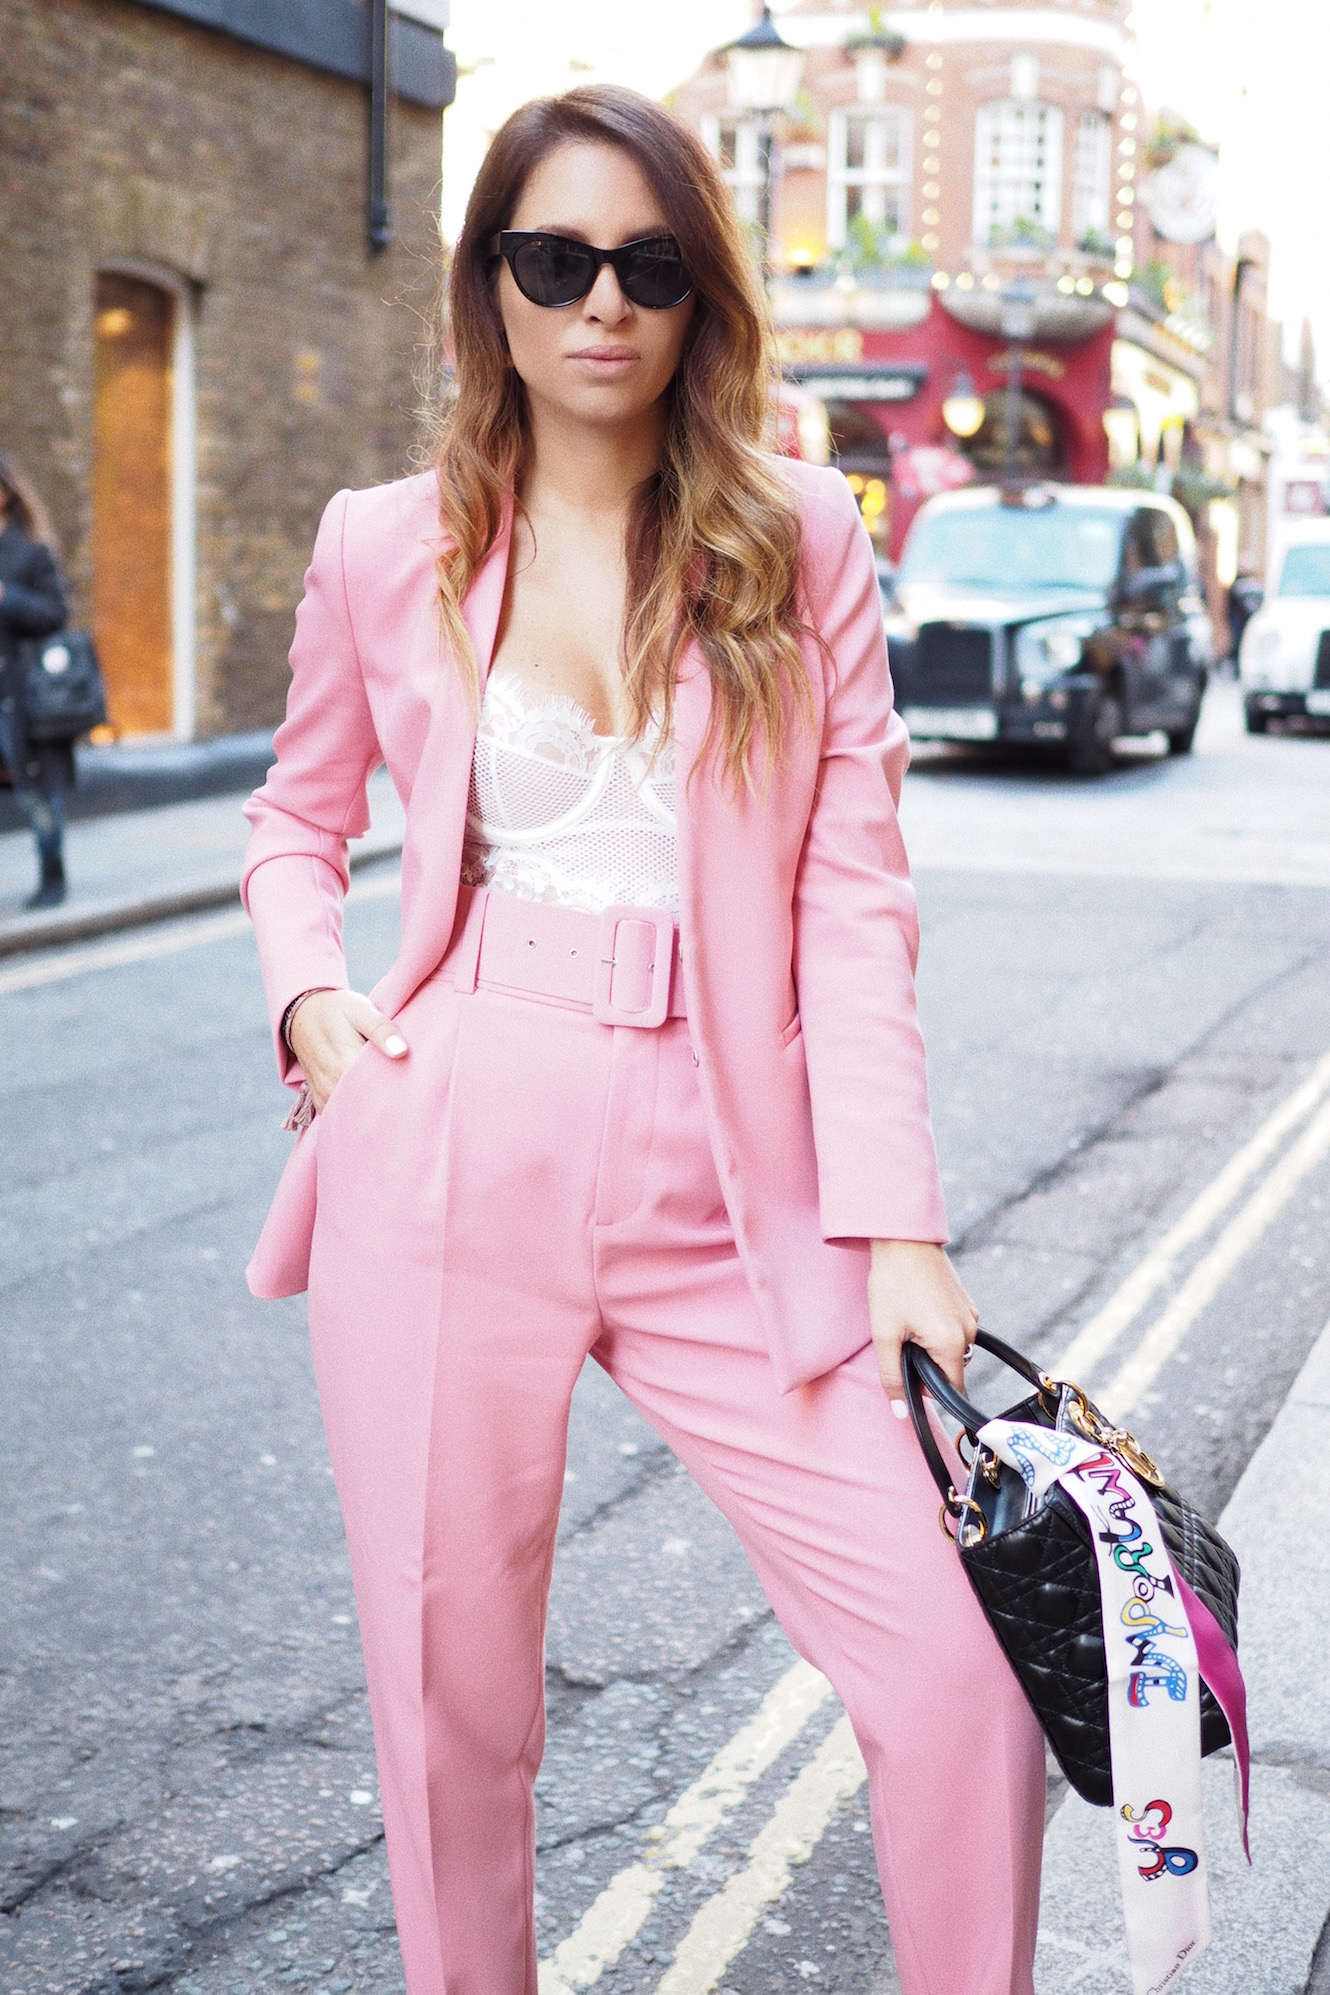 Pink suit and white lace bodysuit at London Fashion Week